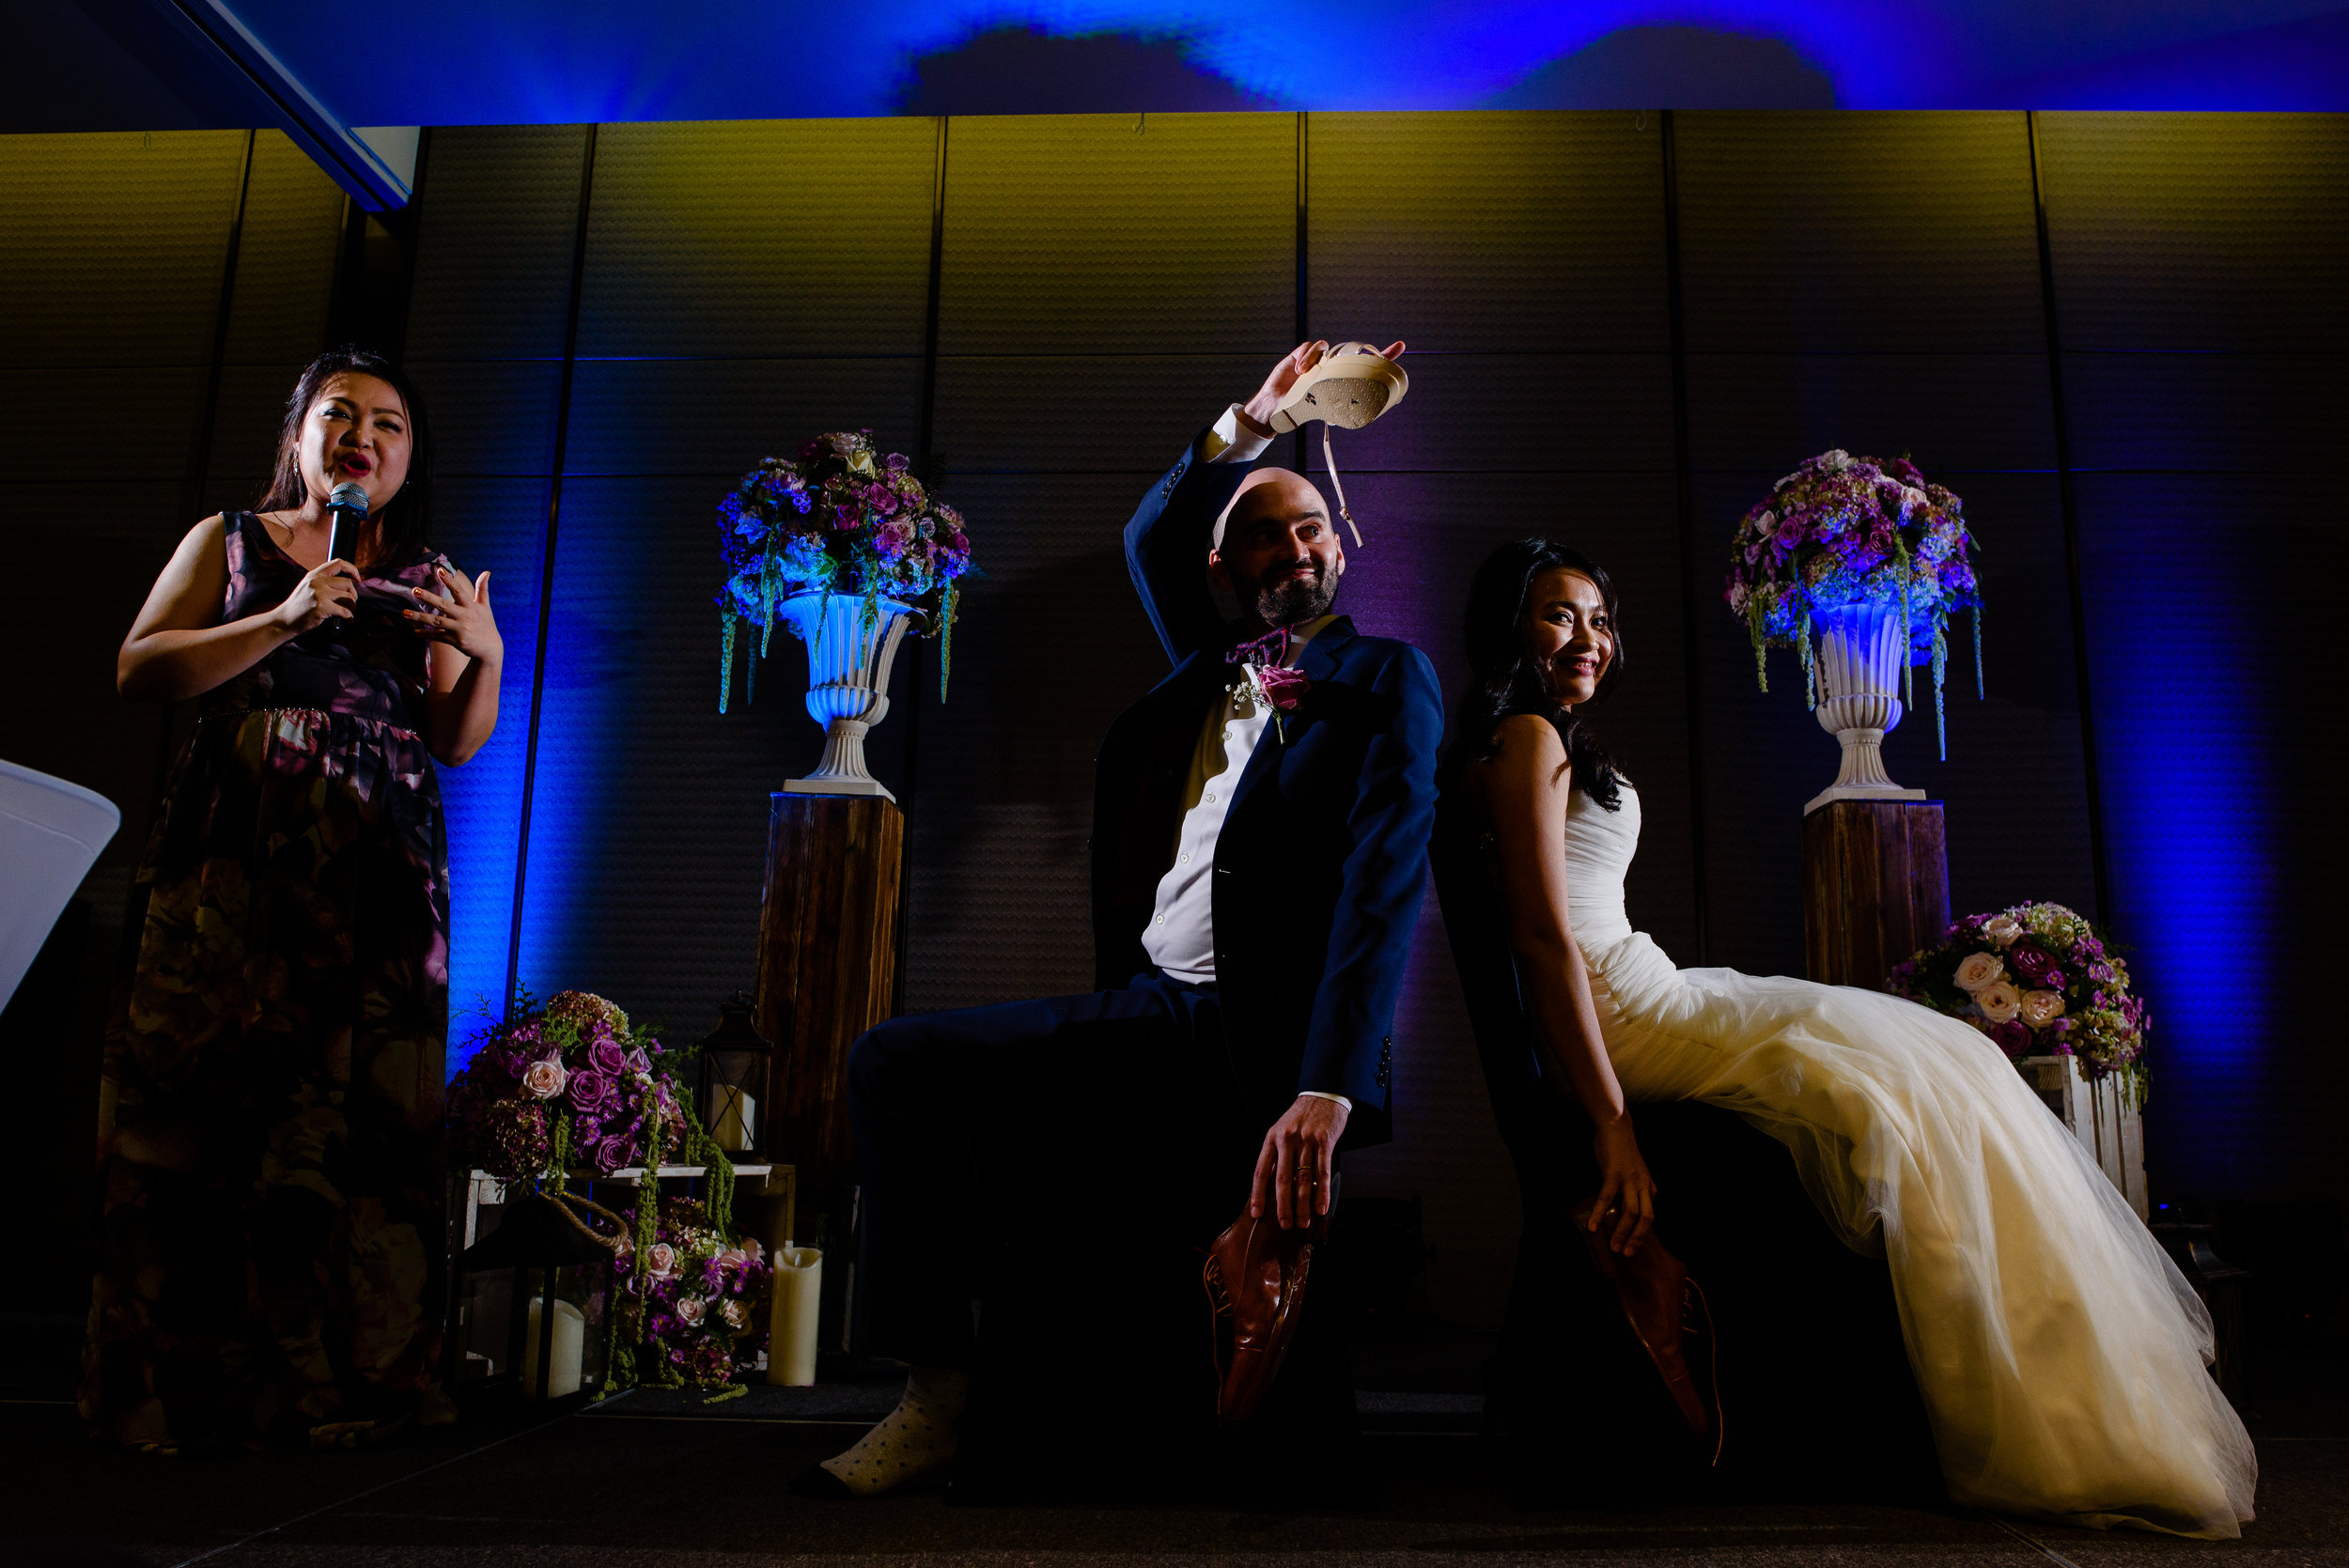 Jon-Hieu-wedding-legend-hotel-saigon-071.JPG